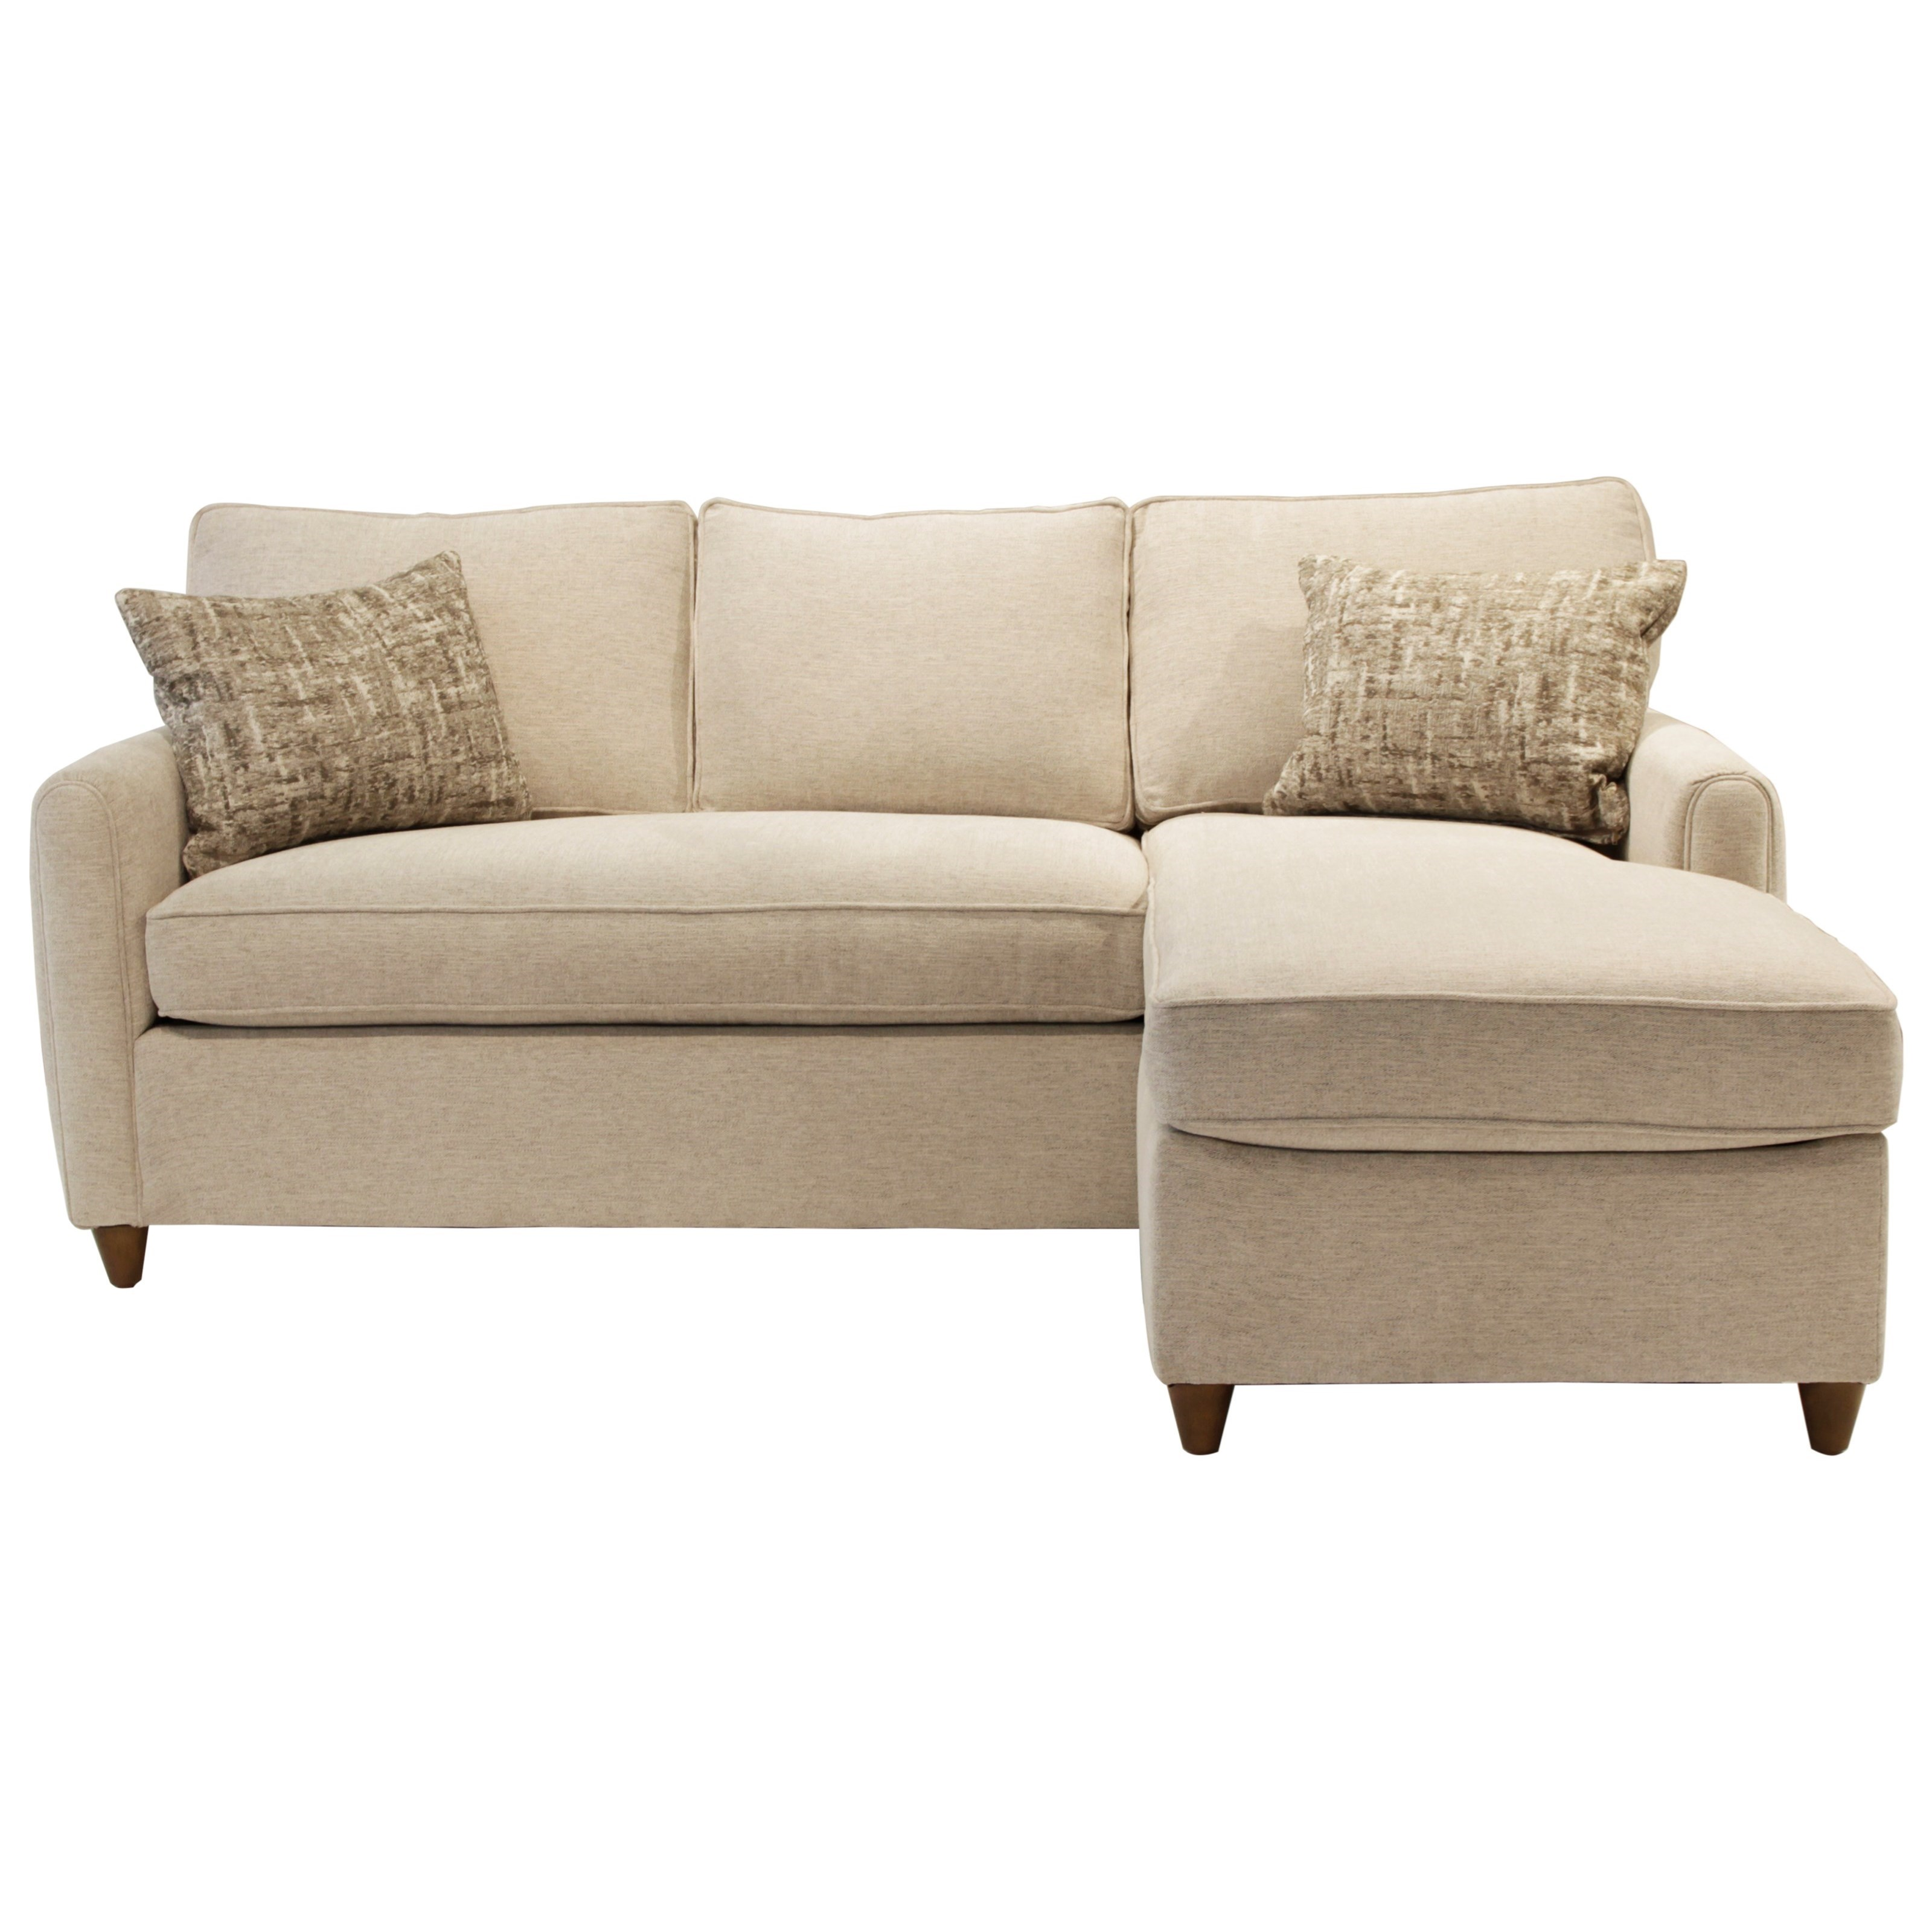 Jonathan Louis Emory Queen Sofabed - Item Number: 036-91A+90S-Merit Dove